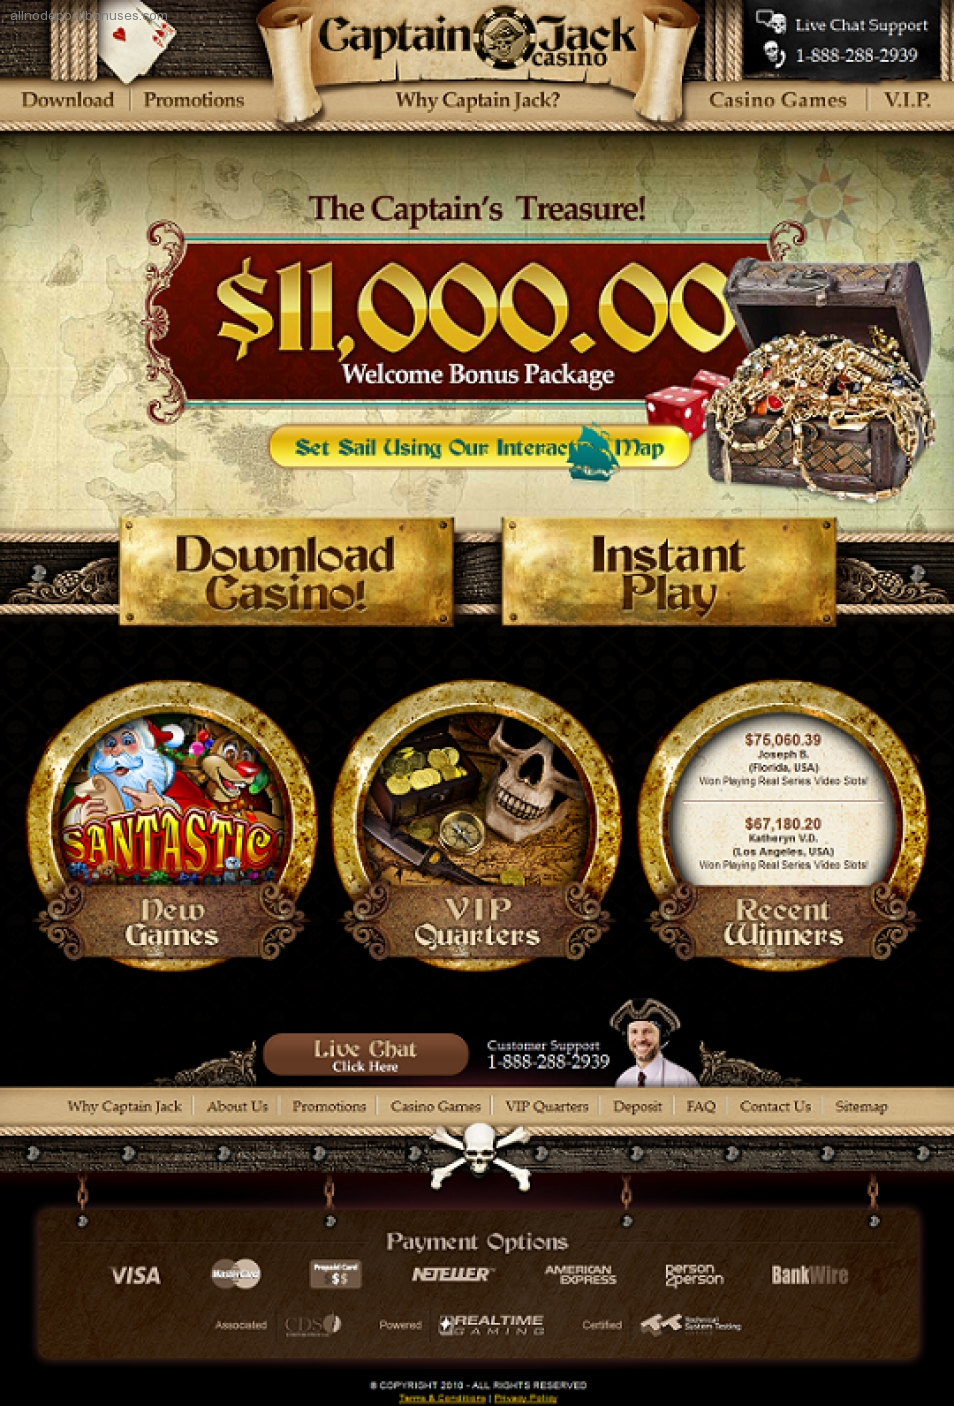 Captain Jack Casino Review - Is this a Scam Casino